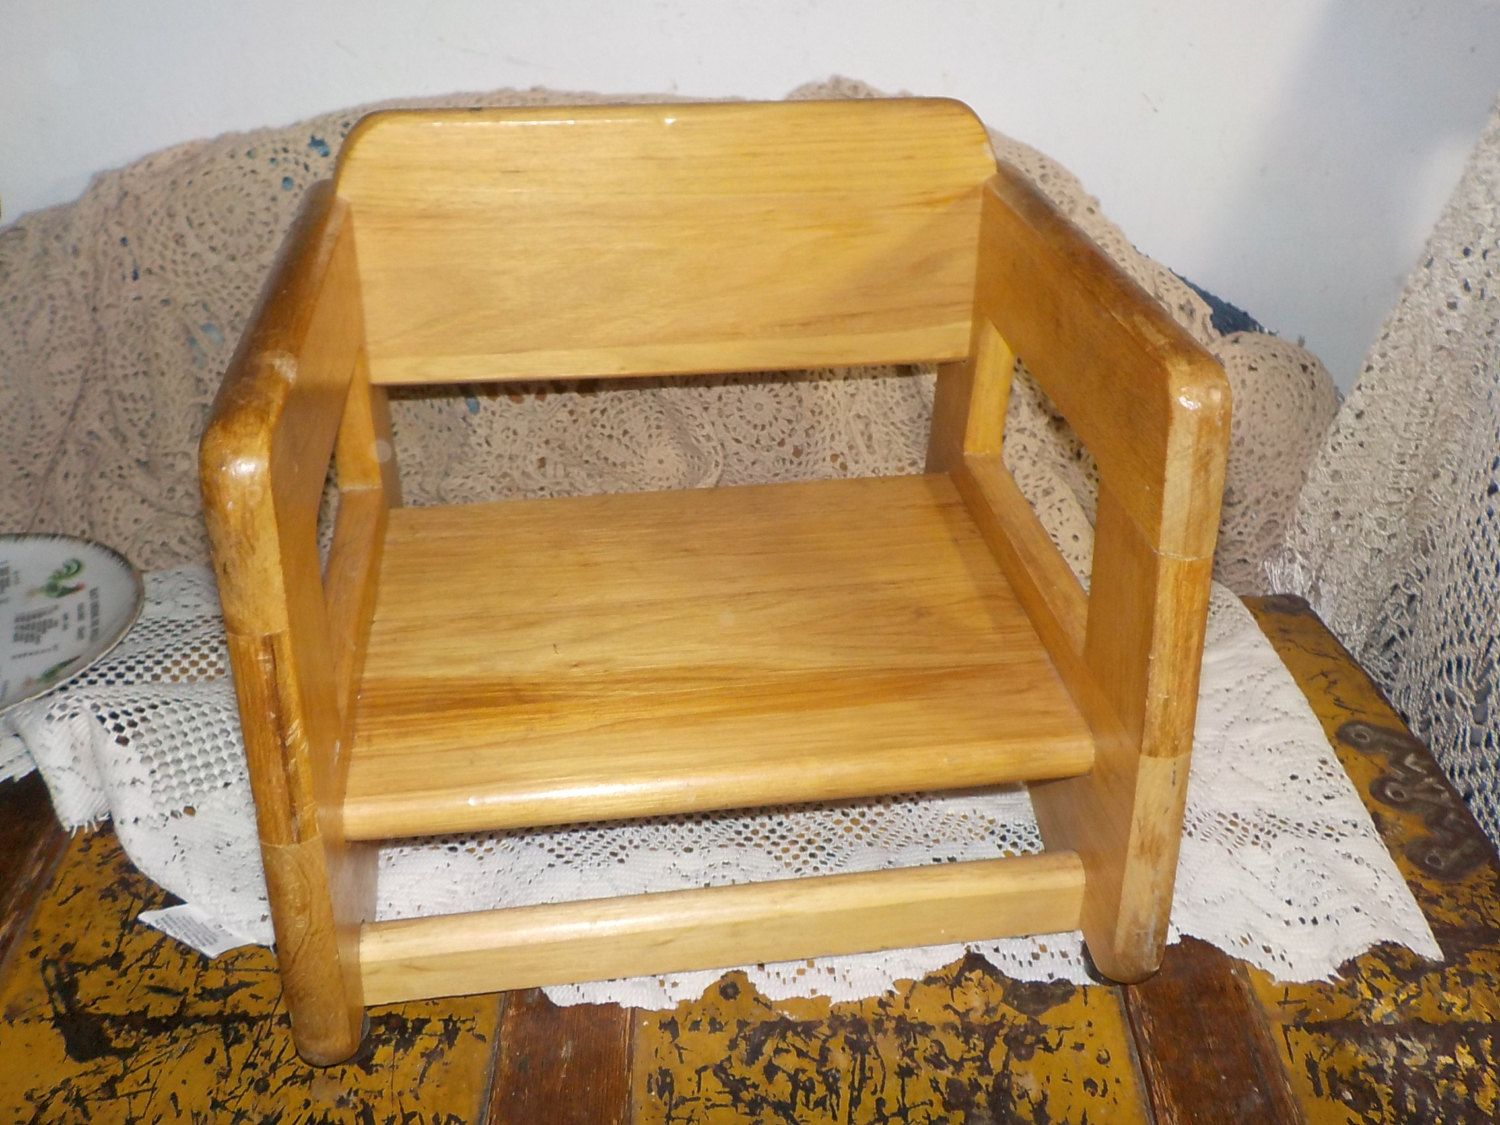 Wooden Childs Booster Seat Full Country Charm Diy Chair Booster Seat Seating